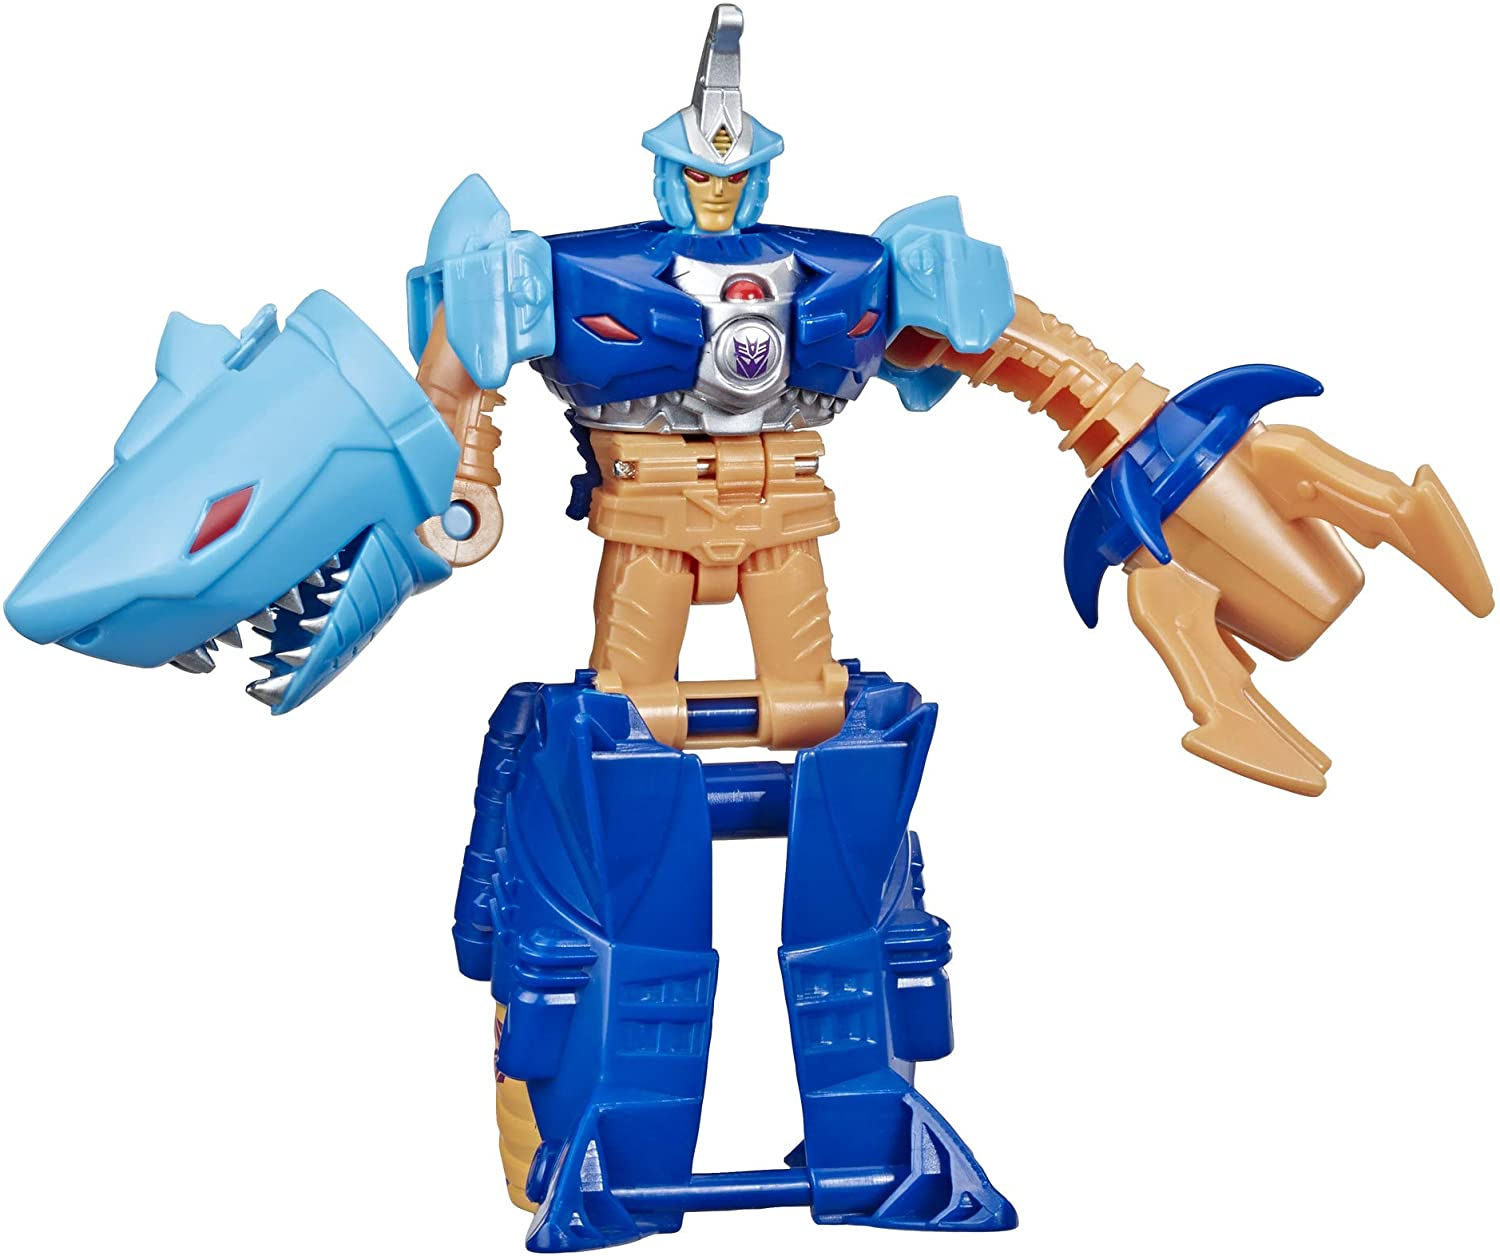 Transformers Toys Cyberverse Action Attackers: 1-Step Changer Skybyte Action Figure - Repeatable Driller Drive Action Attack - for Kids Ages 6 & Up, 4.25""